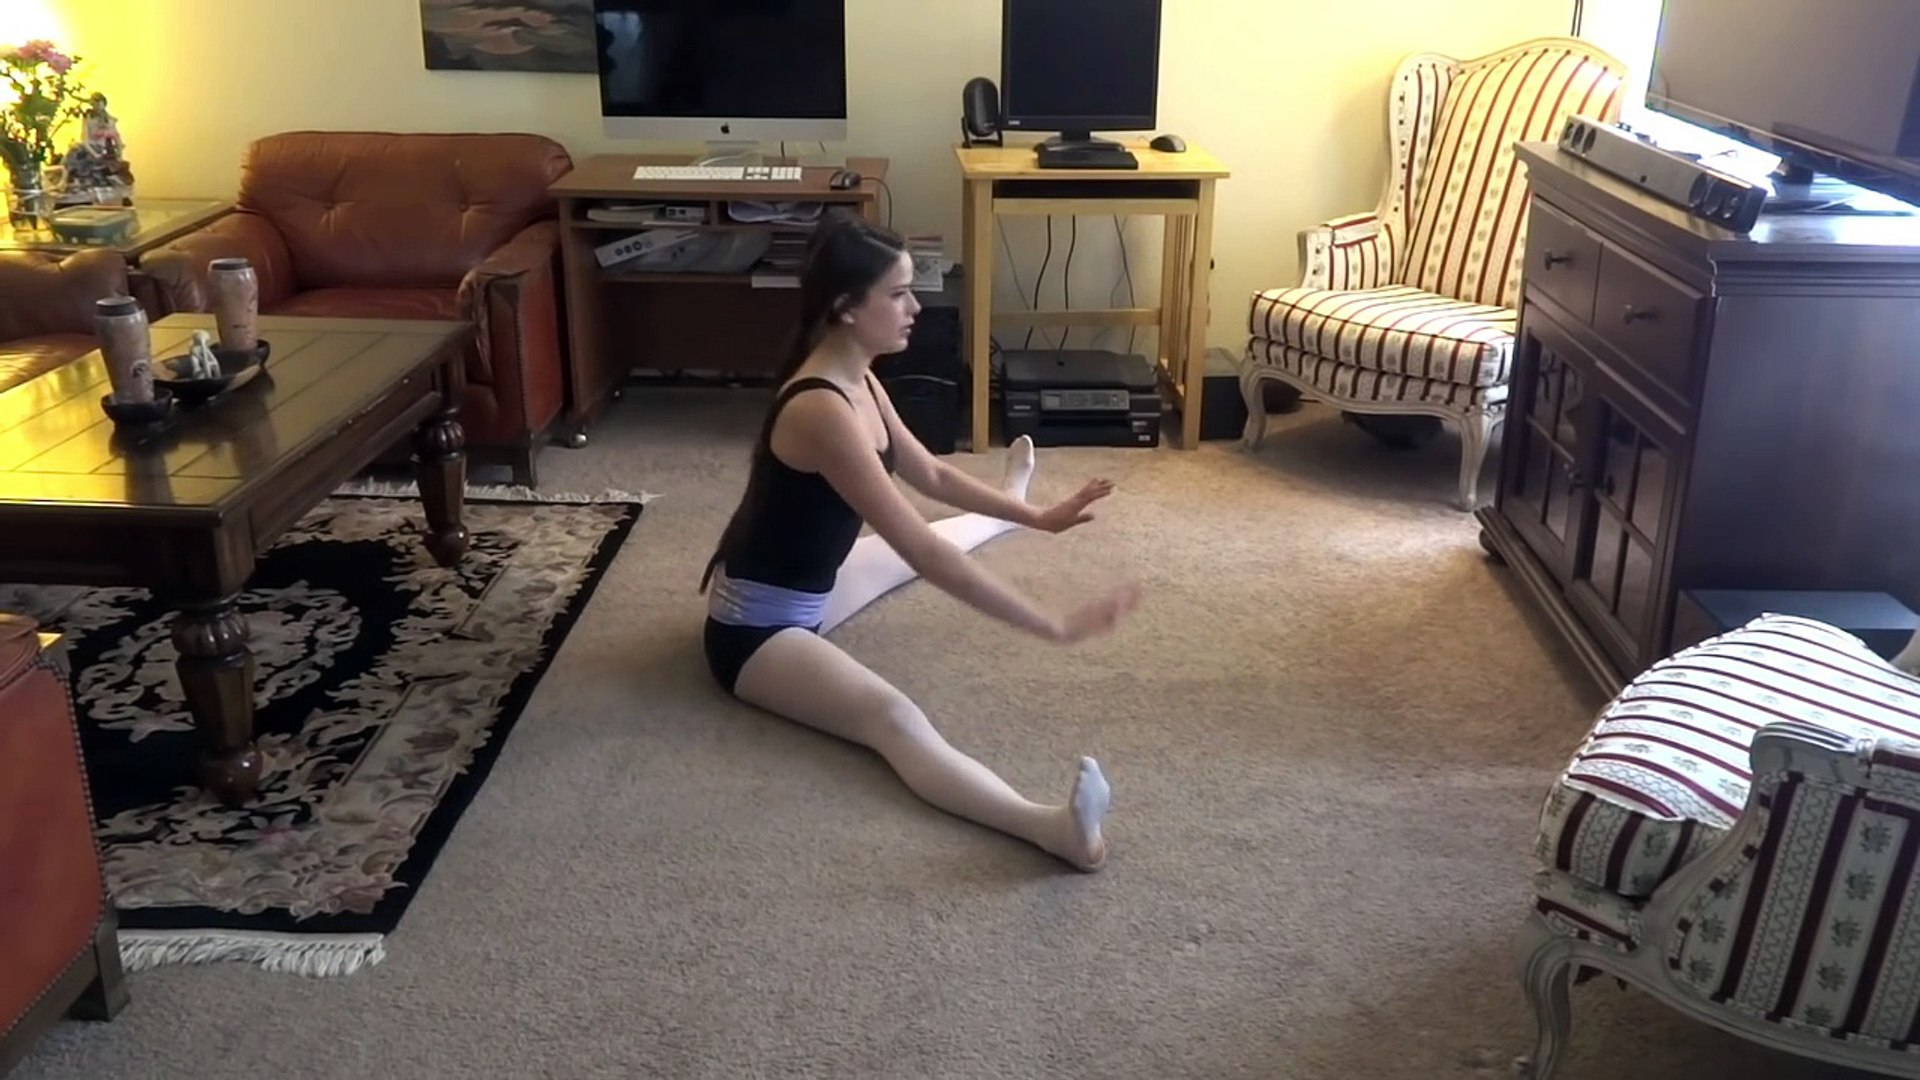 Stretches for Beginning Ballet - Daily Stretching Routine - How to Get Your Splits!